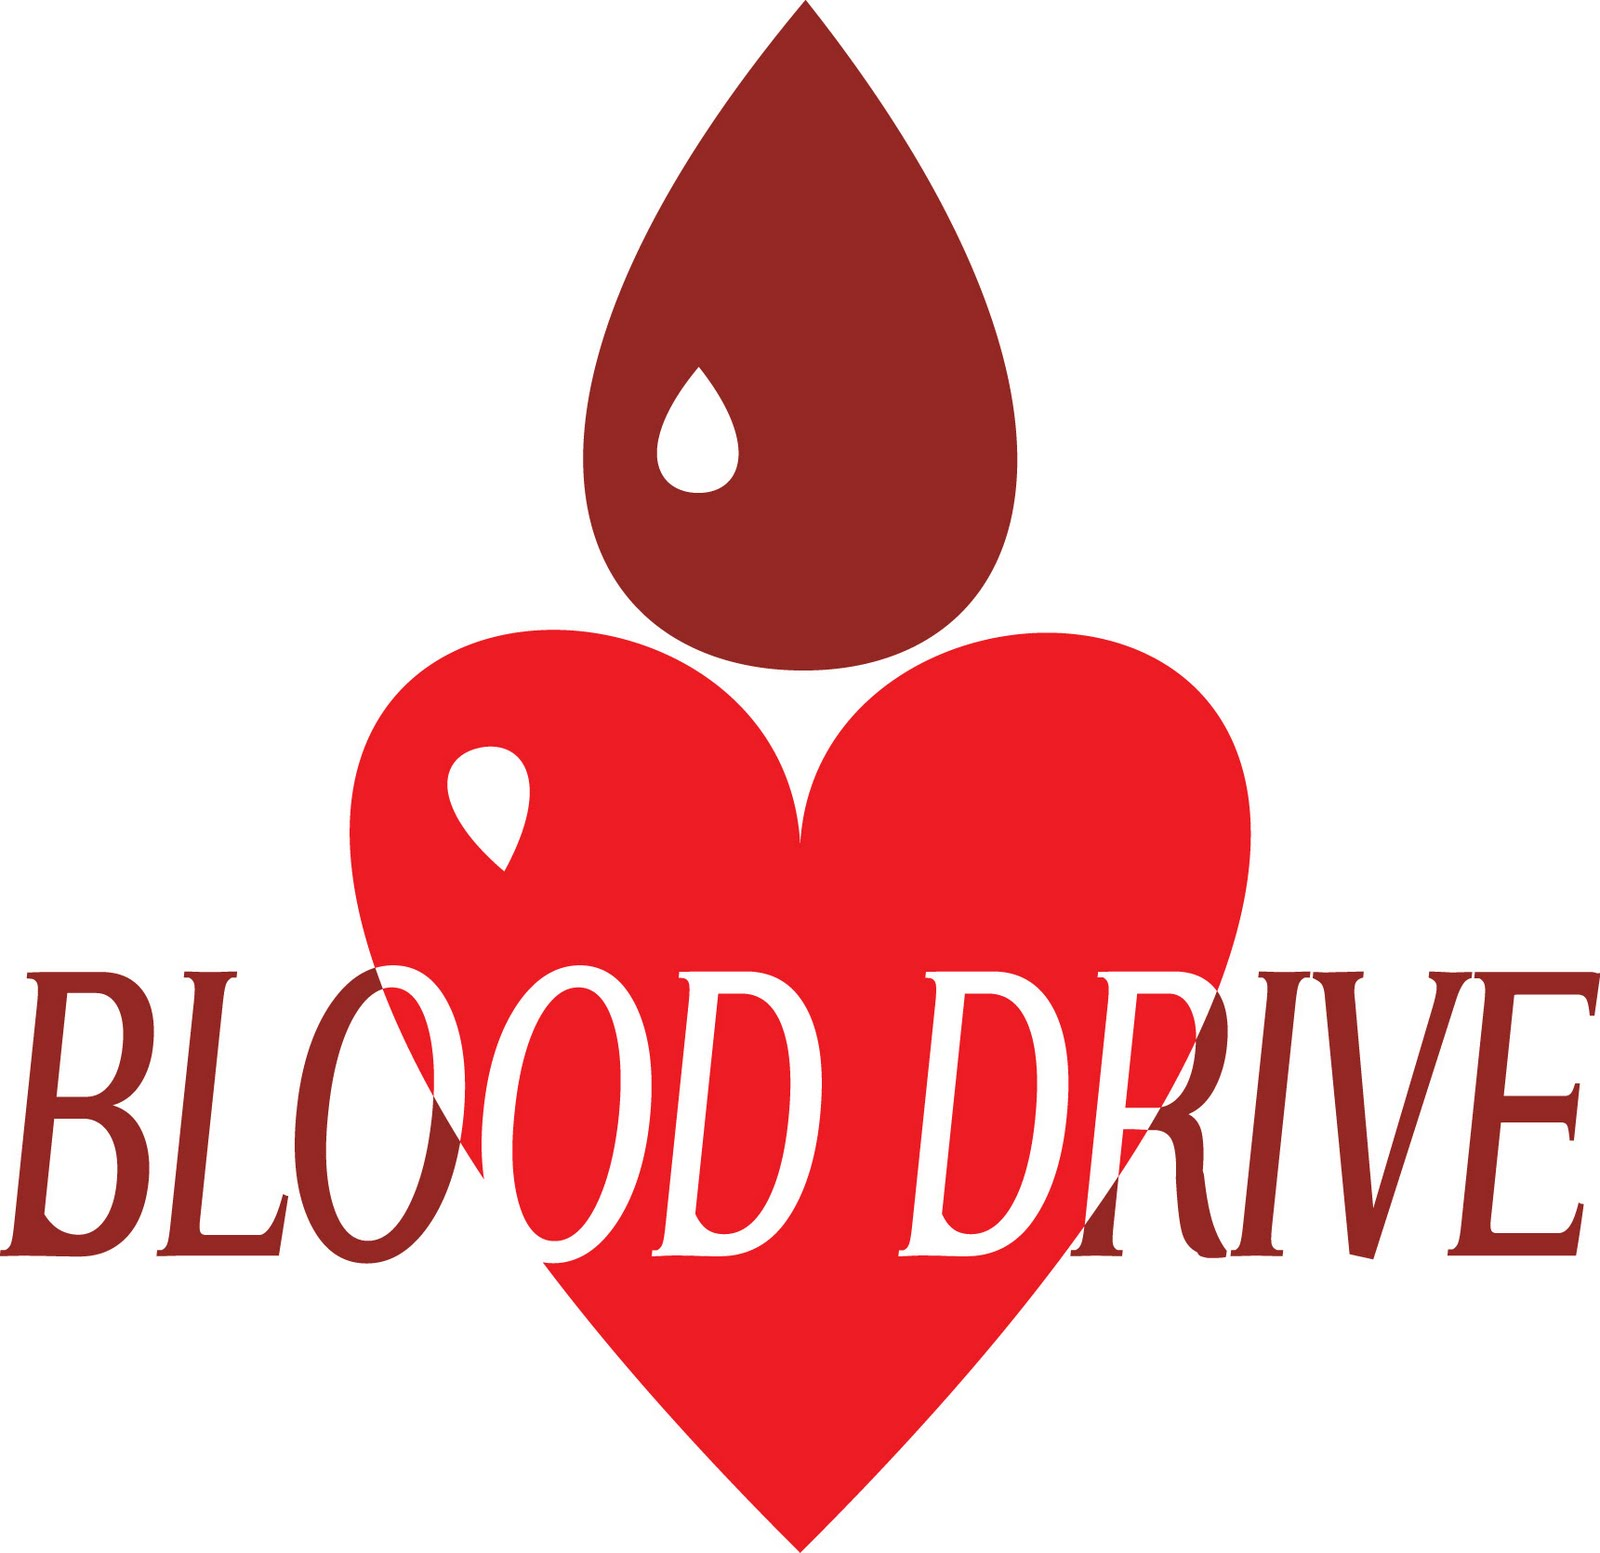 ... Blood Drive Thank You Clipart ...-... Blood drive thank you clipart ...-10